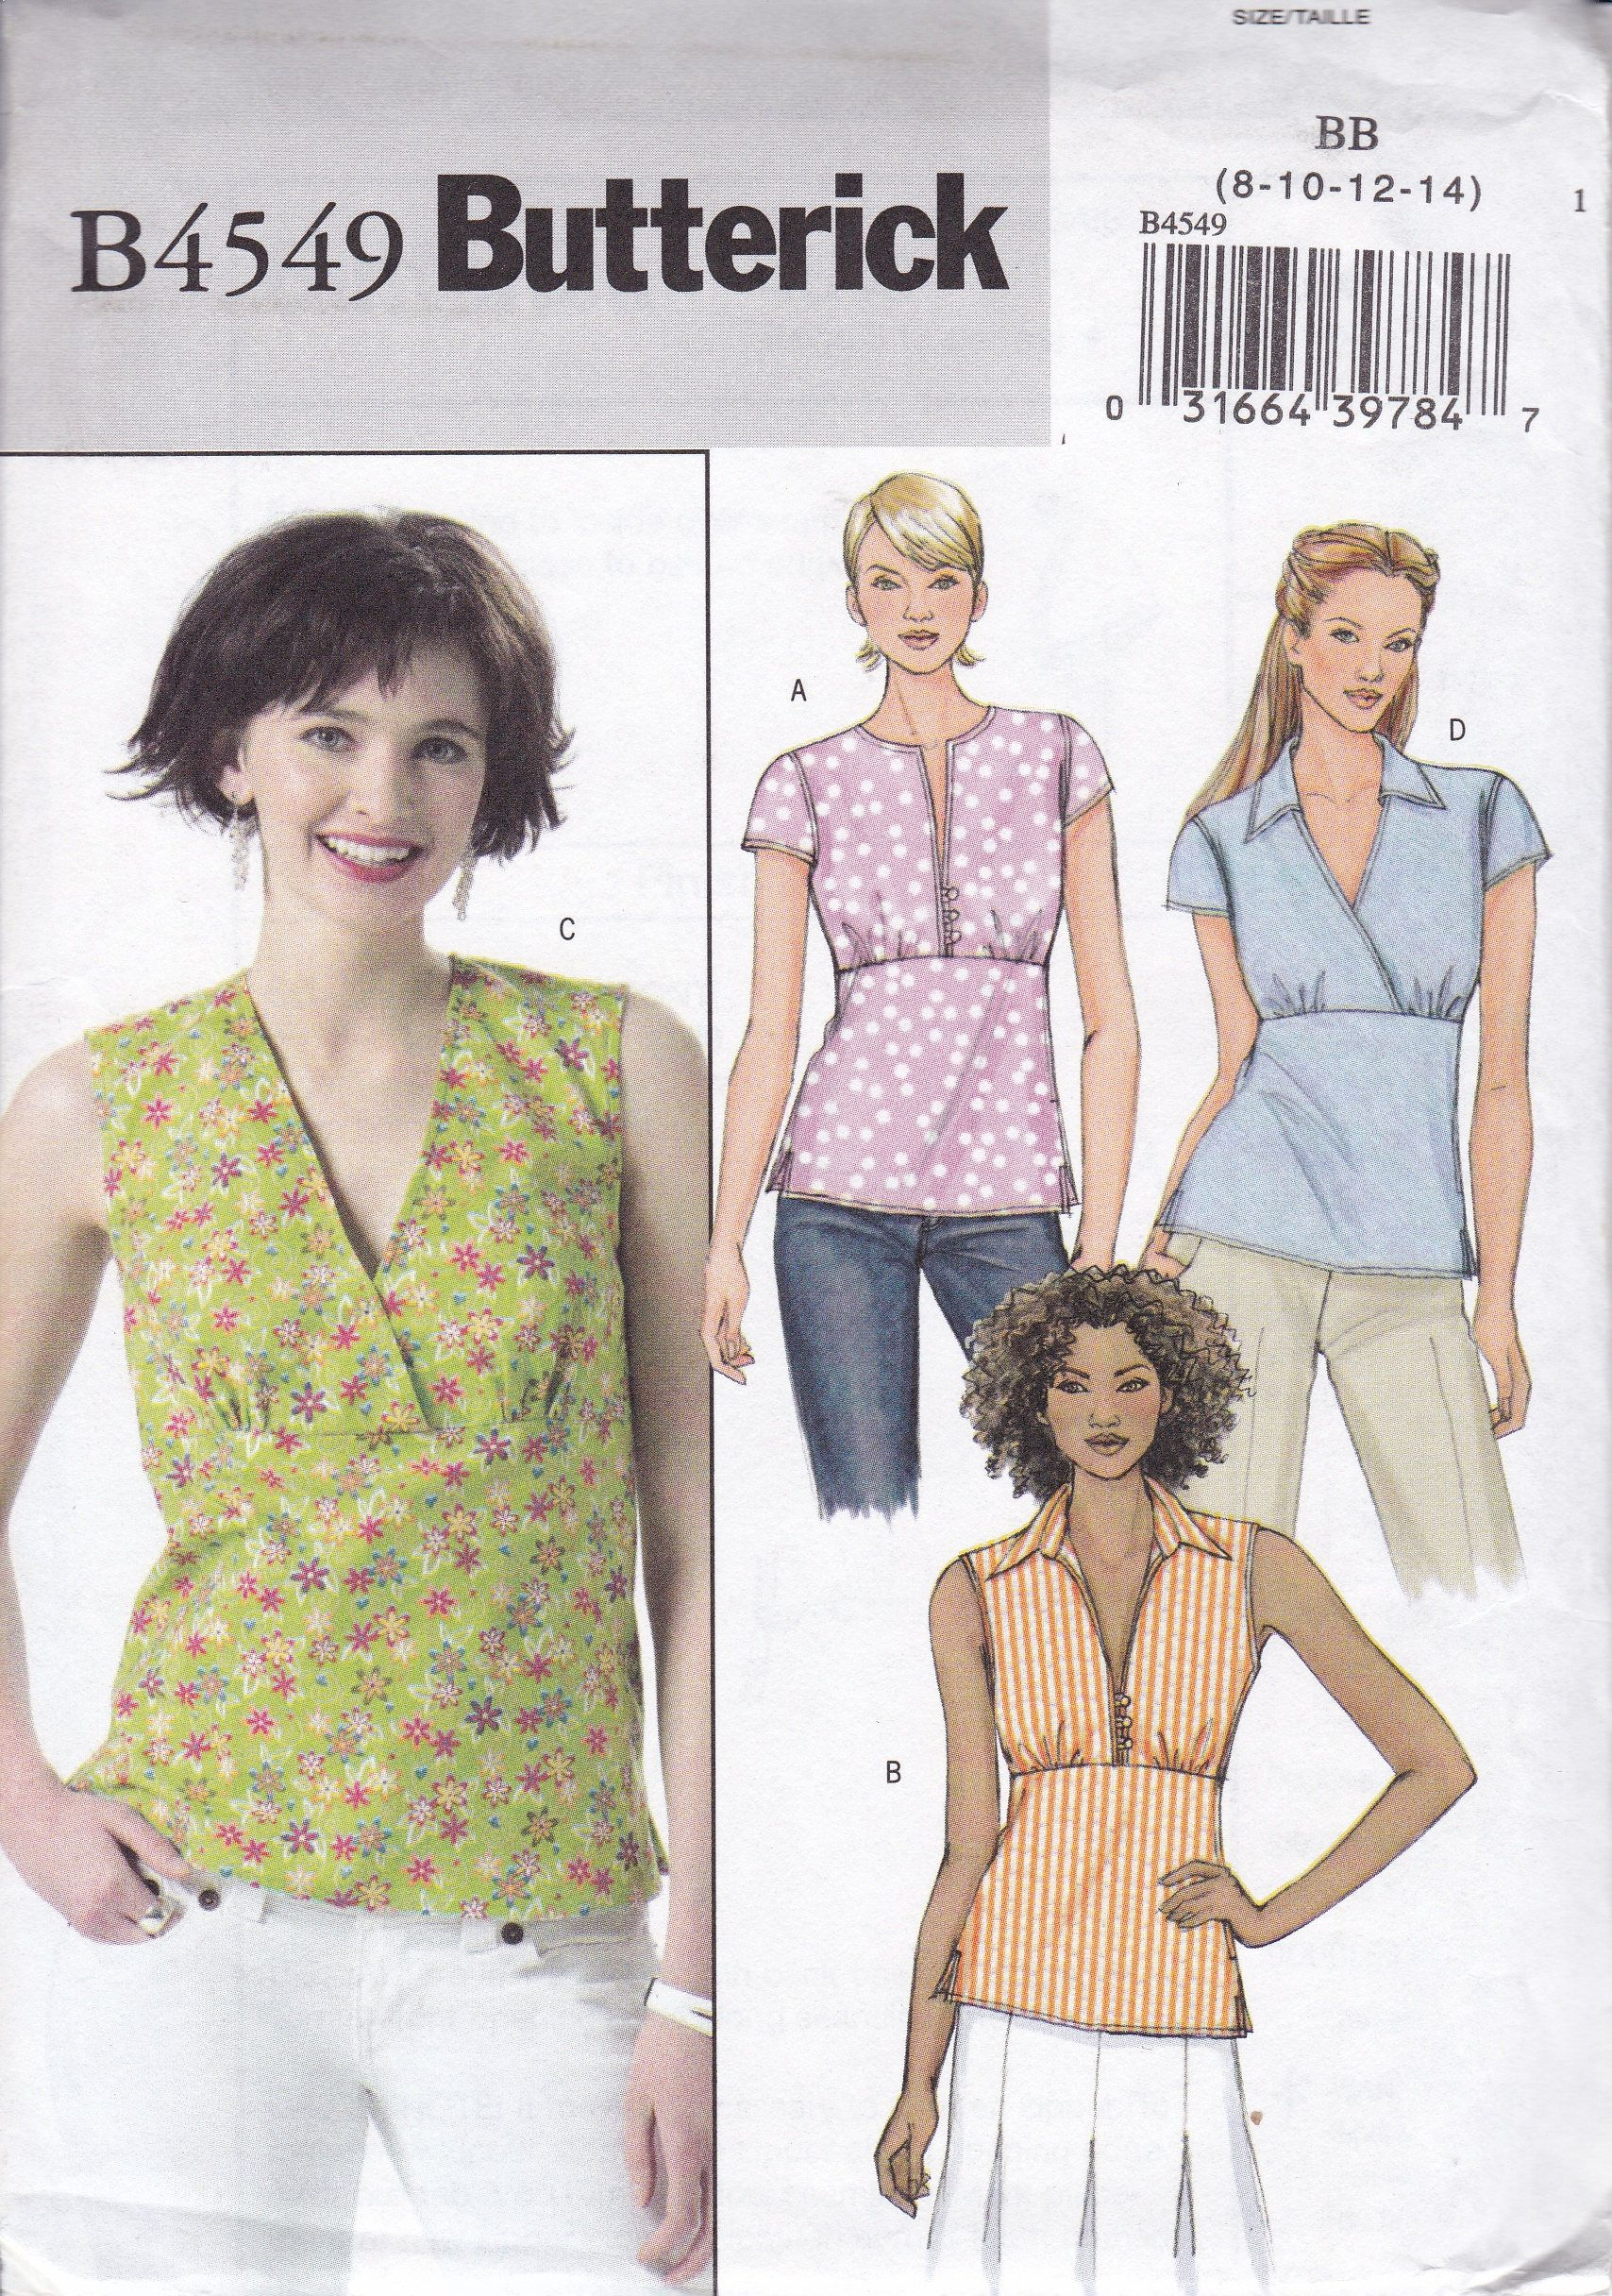 Dress and Leggings Top Simplicity Creative Patterns 1376 Misses and Plus Size Jacket 20W-28W BB